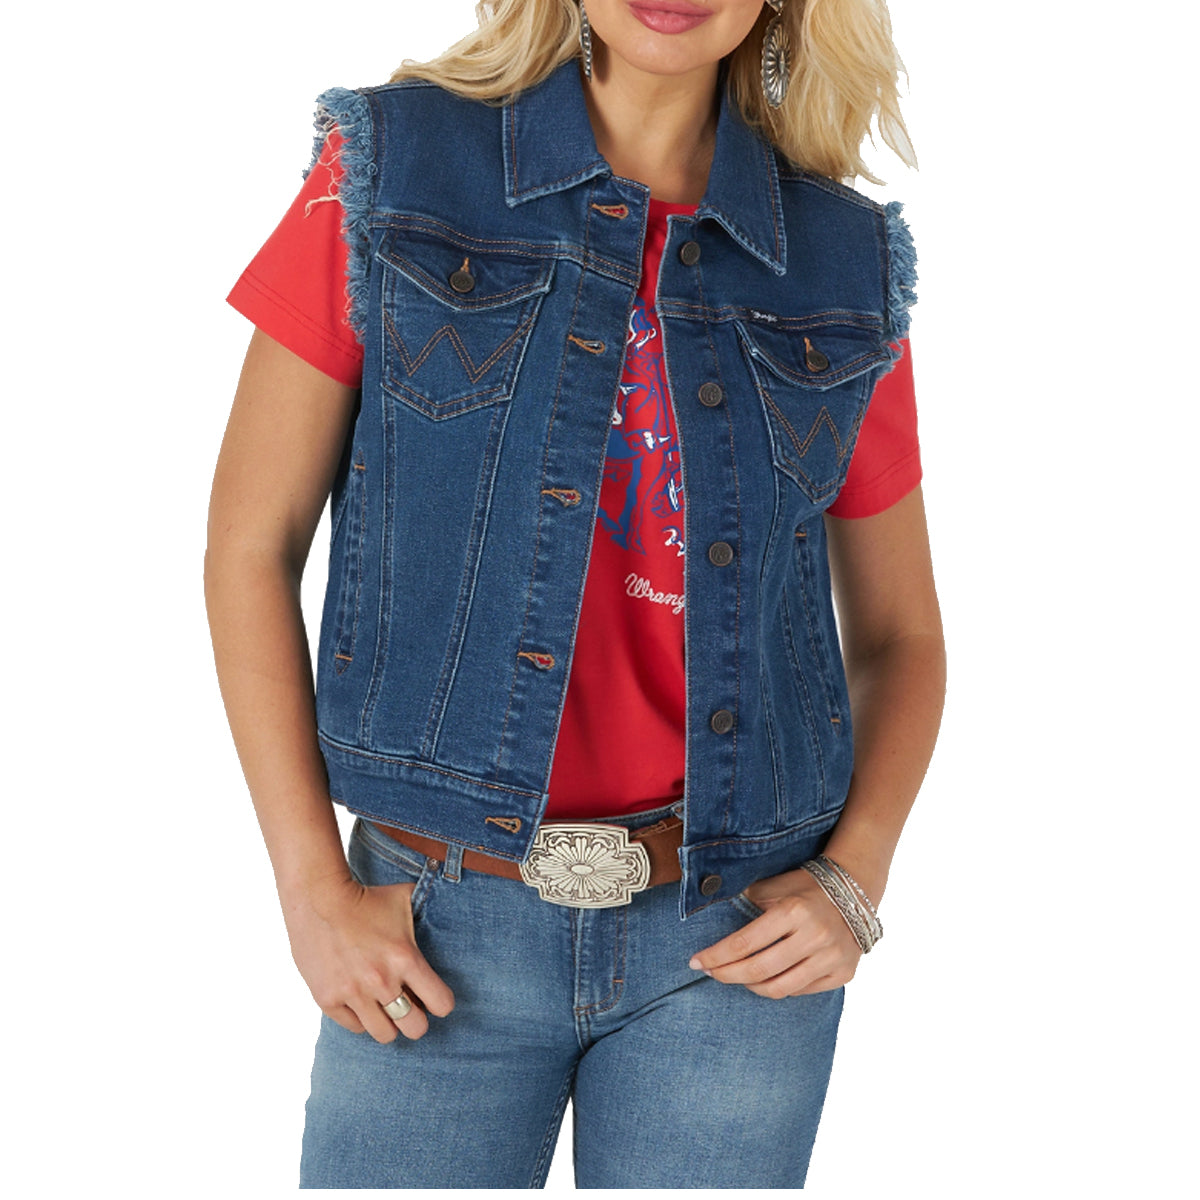 Wrangler Women's Retro Punchy Sleeveless Vest - Denim